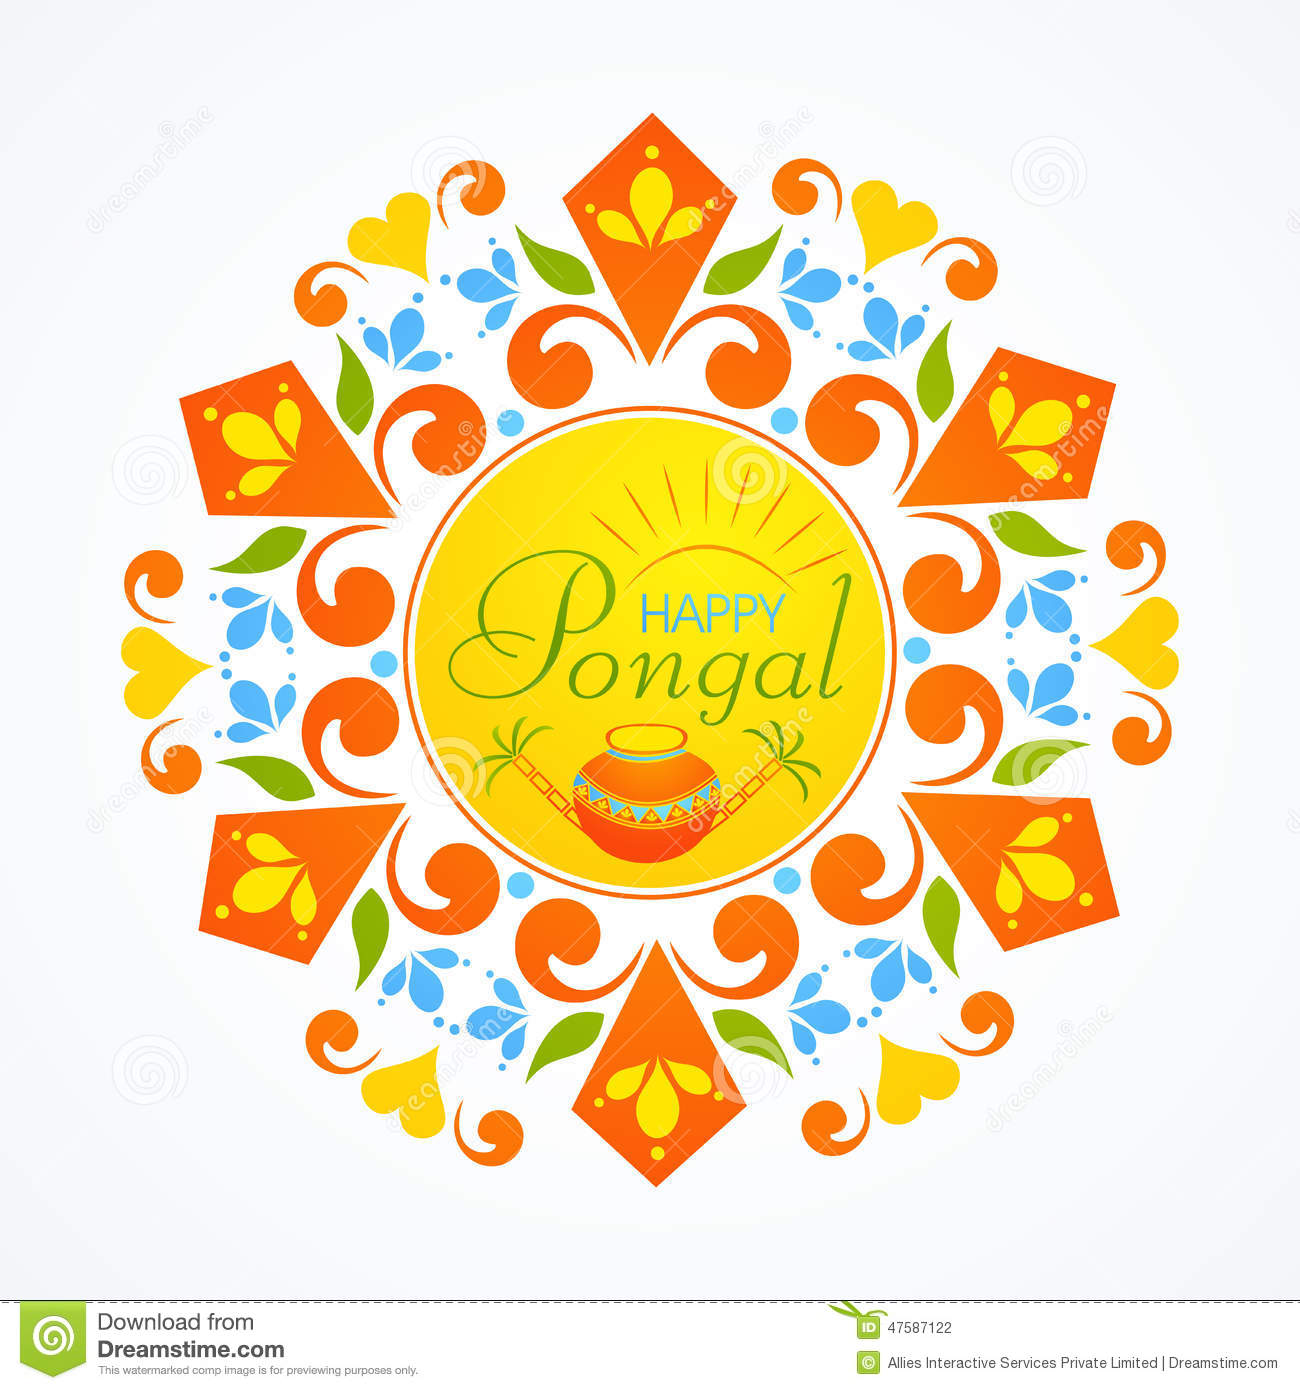 Greeting Card Design For Pongal Festival Celebrations Stock